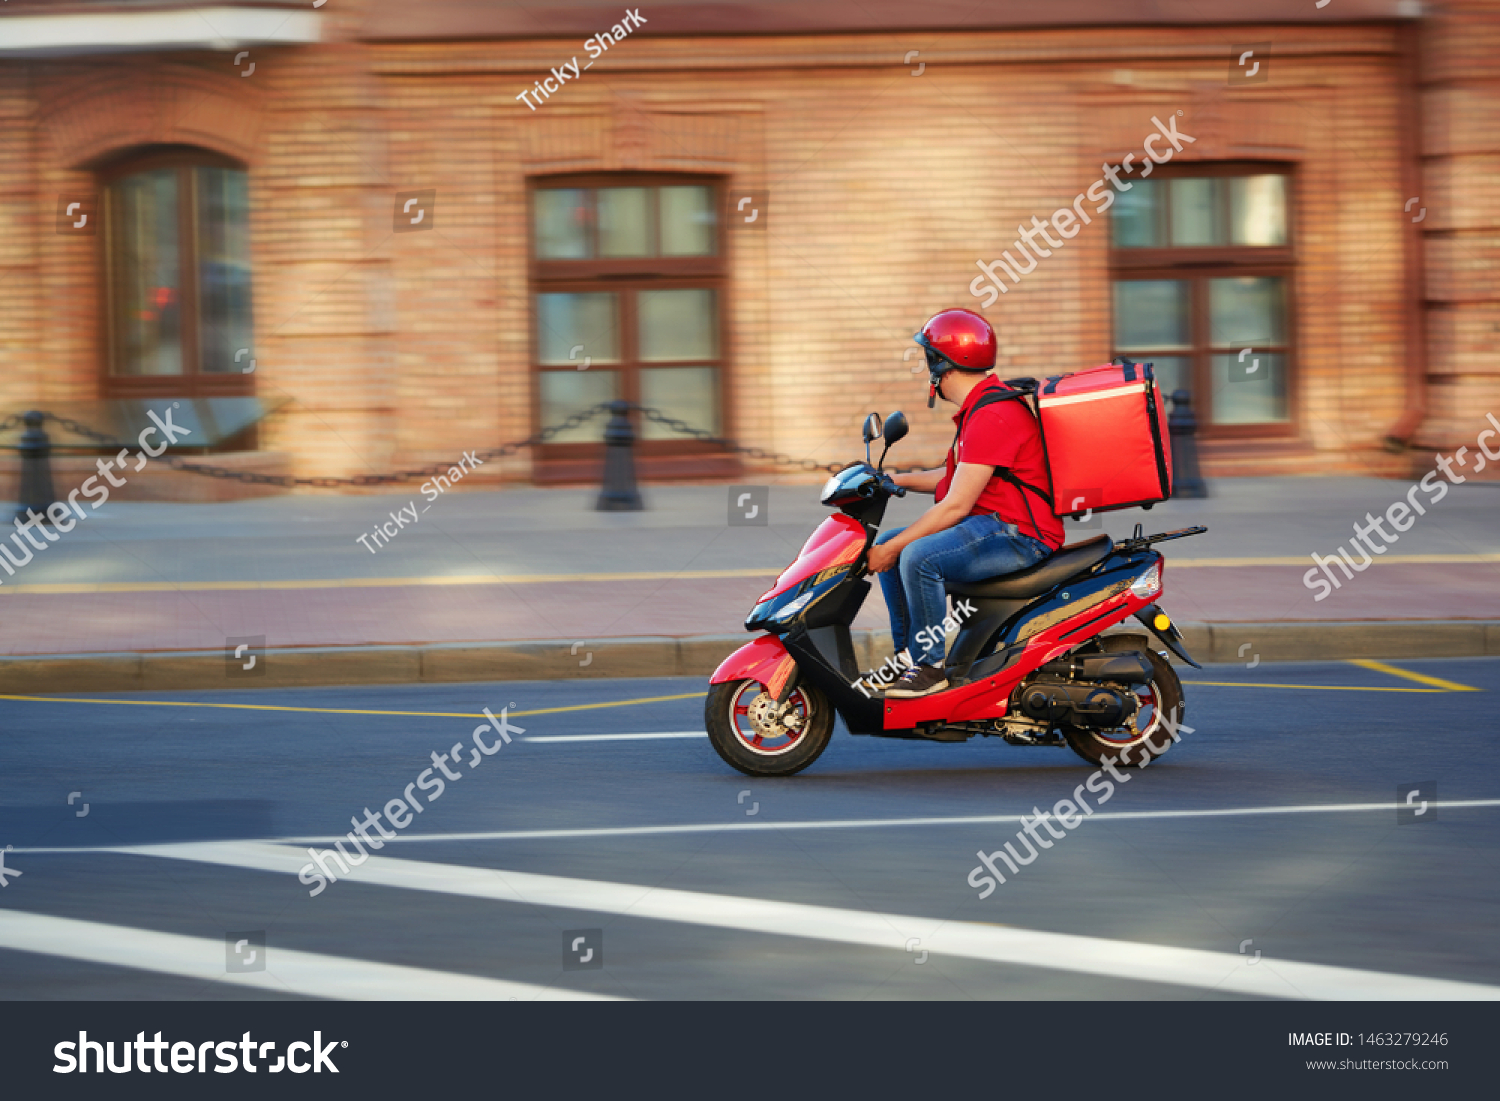 Delivery boy of takeaway on scooter with isothermal food case box driving fast. Express food delivery service from cafes and restaurants. Courier on the moto scooter delivering food. #1463279246